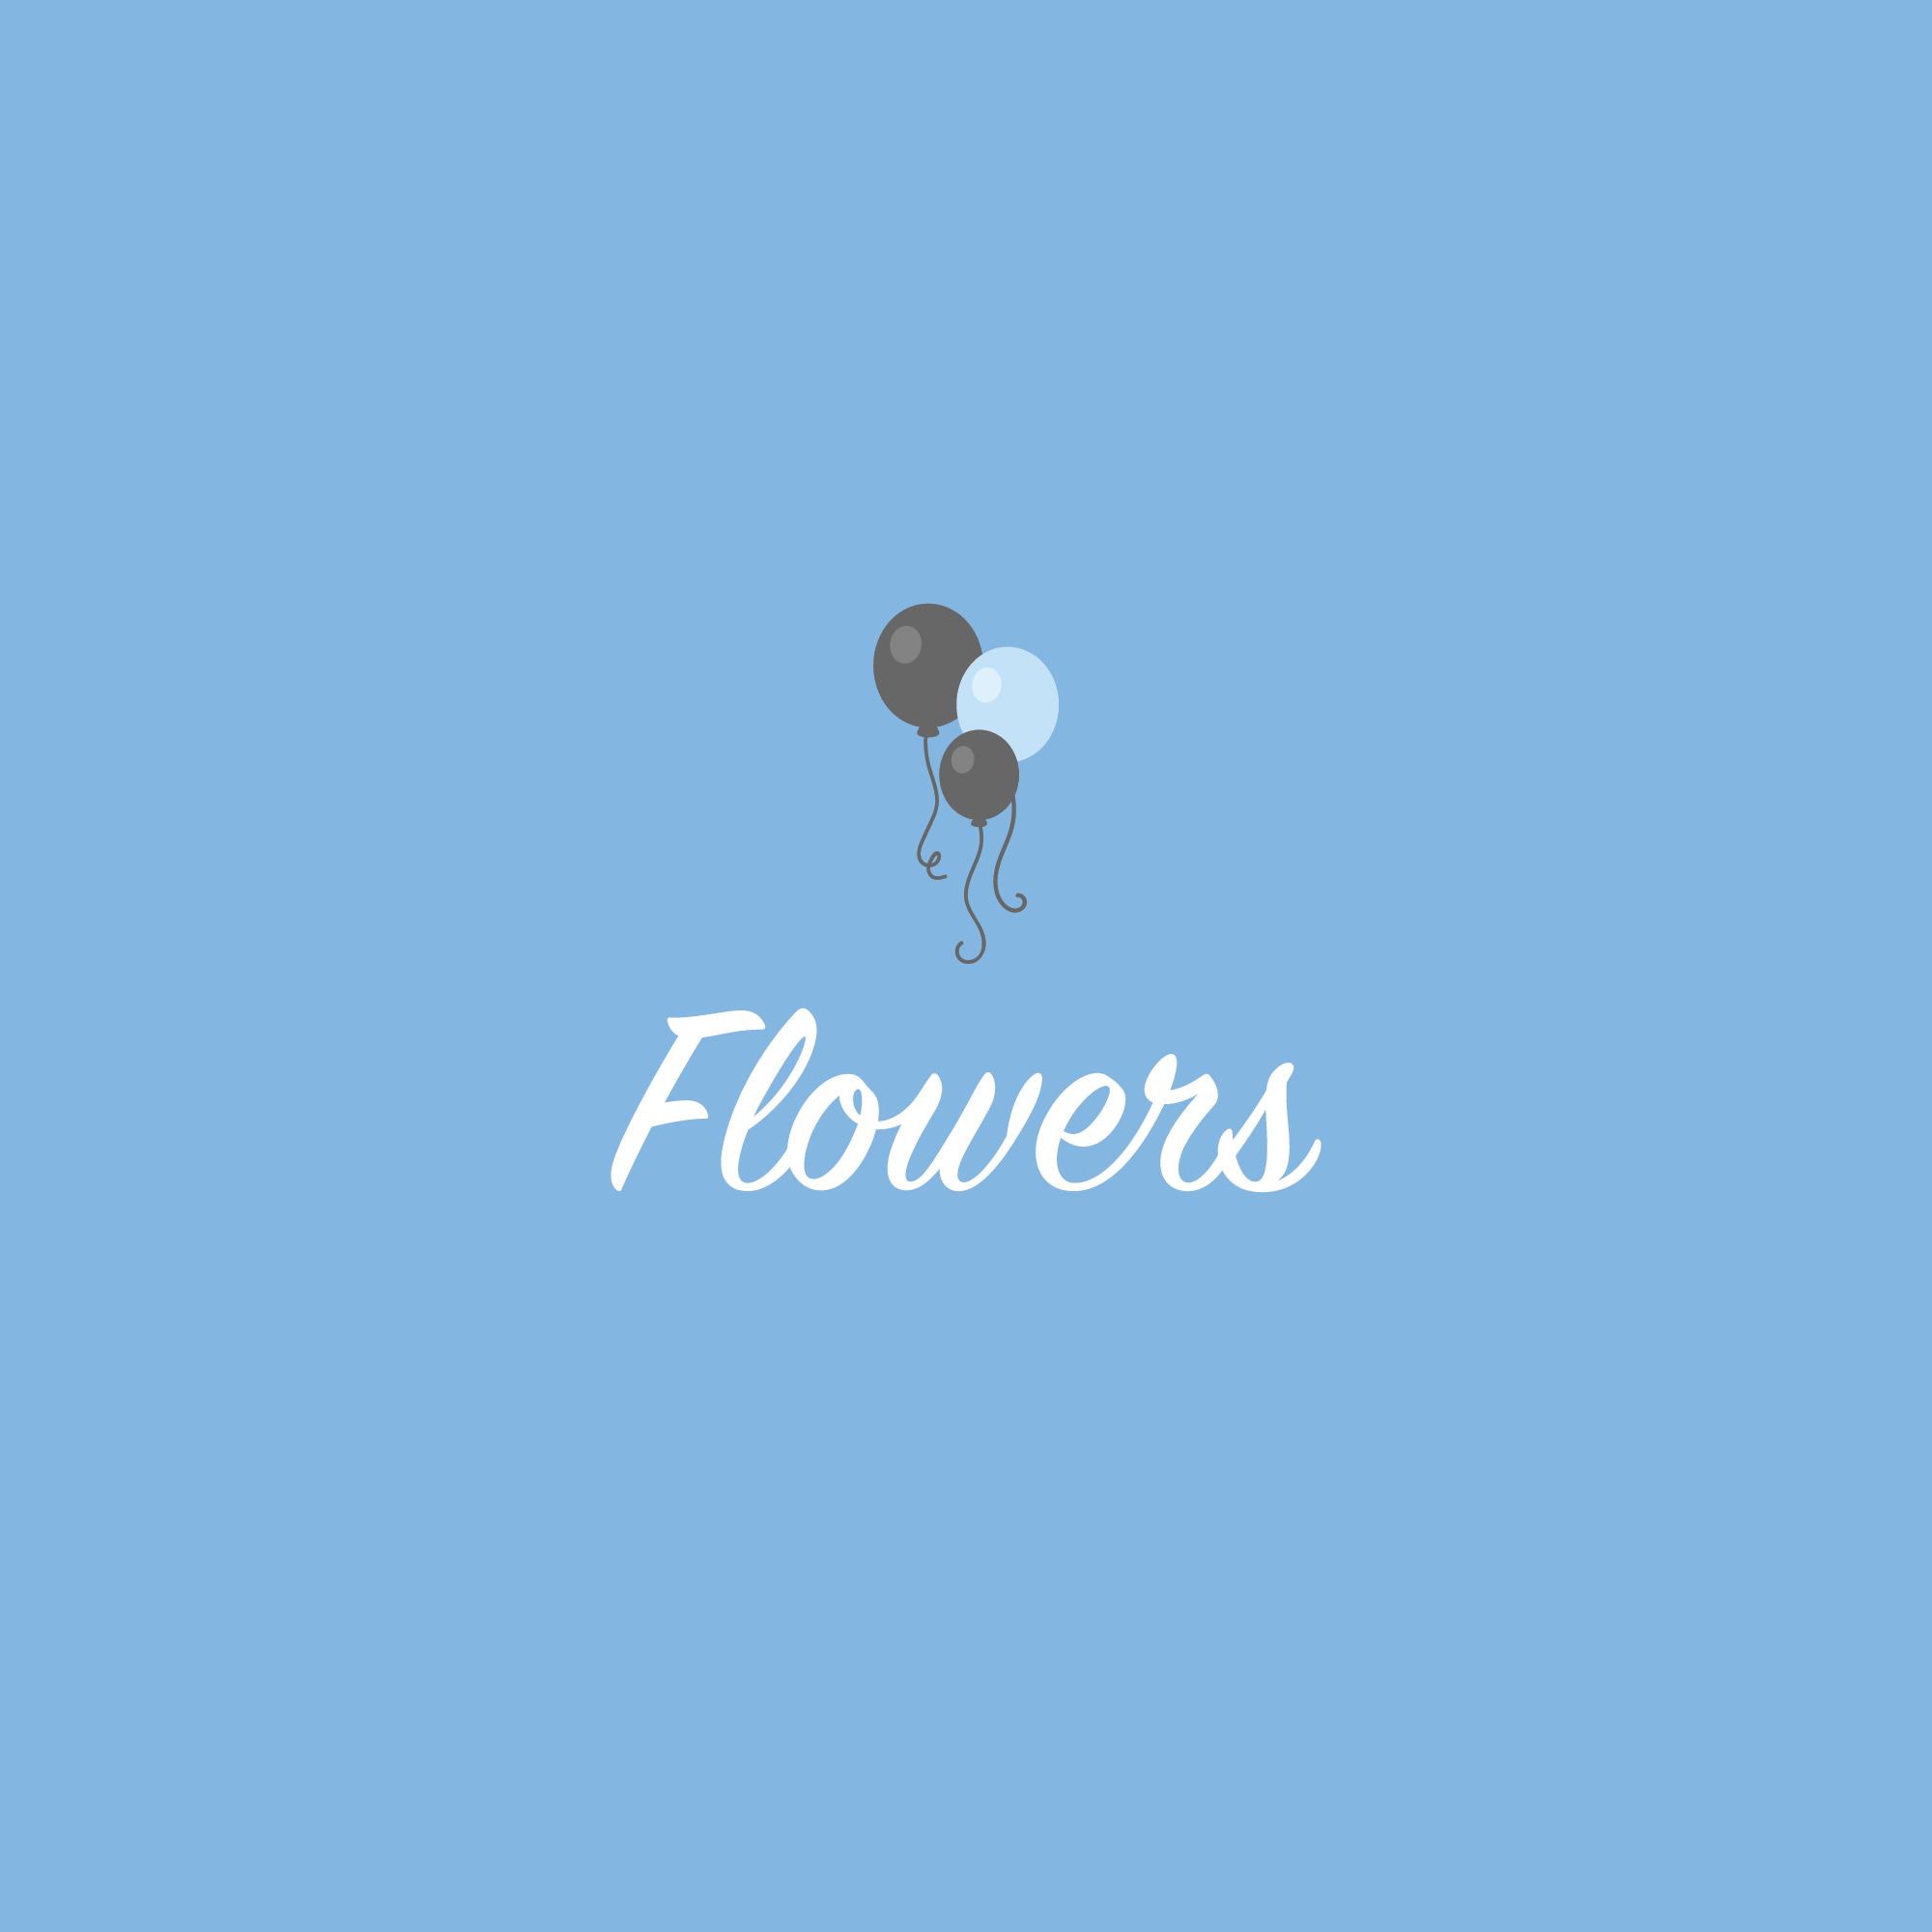 Instagram Story Cover - Flowers Image